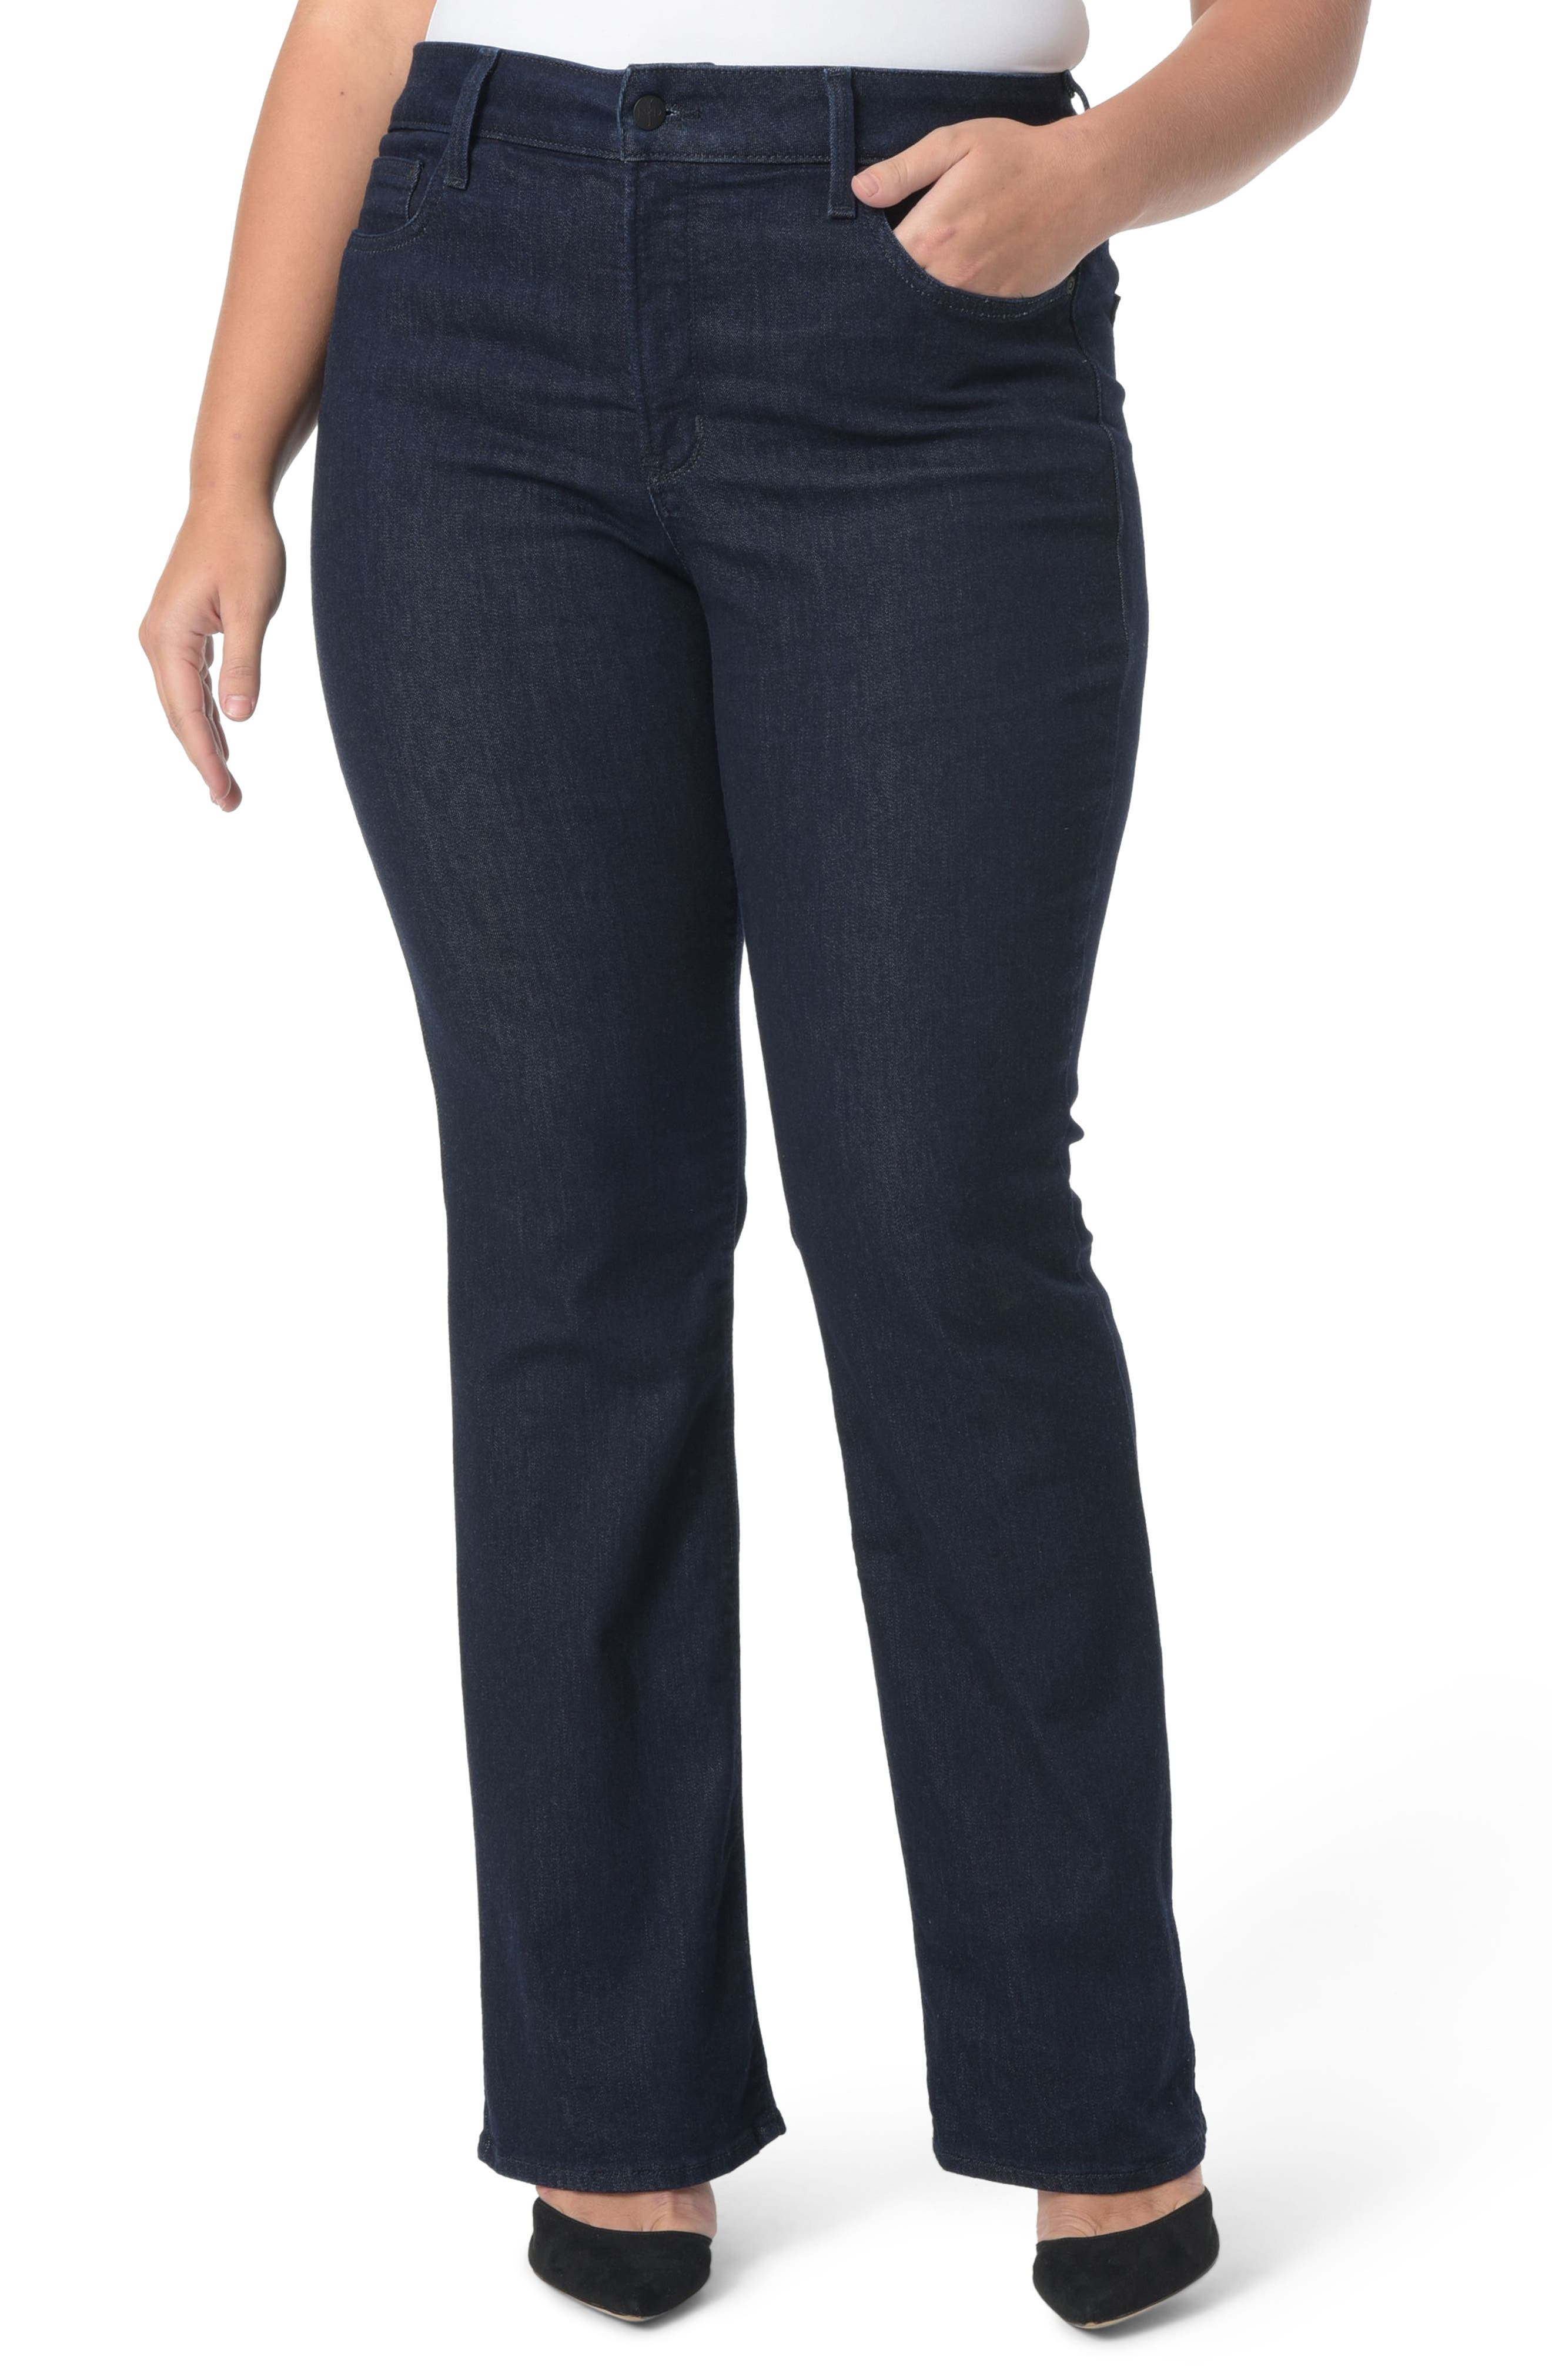 NYDJ, Barbara Stretch Bootcut Jeans, Main thumbnail 1, color, RINSE TONAL STITCH